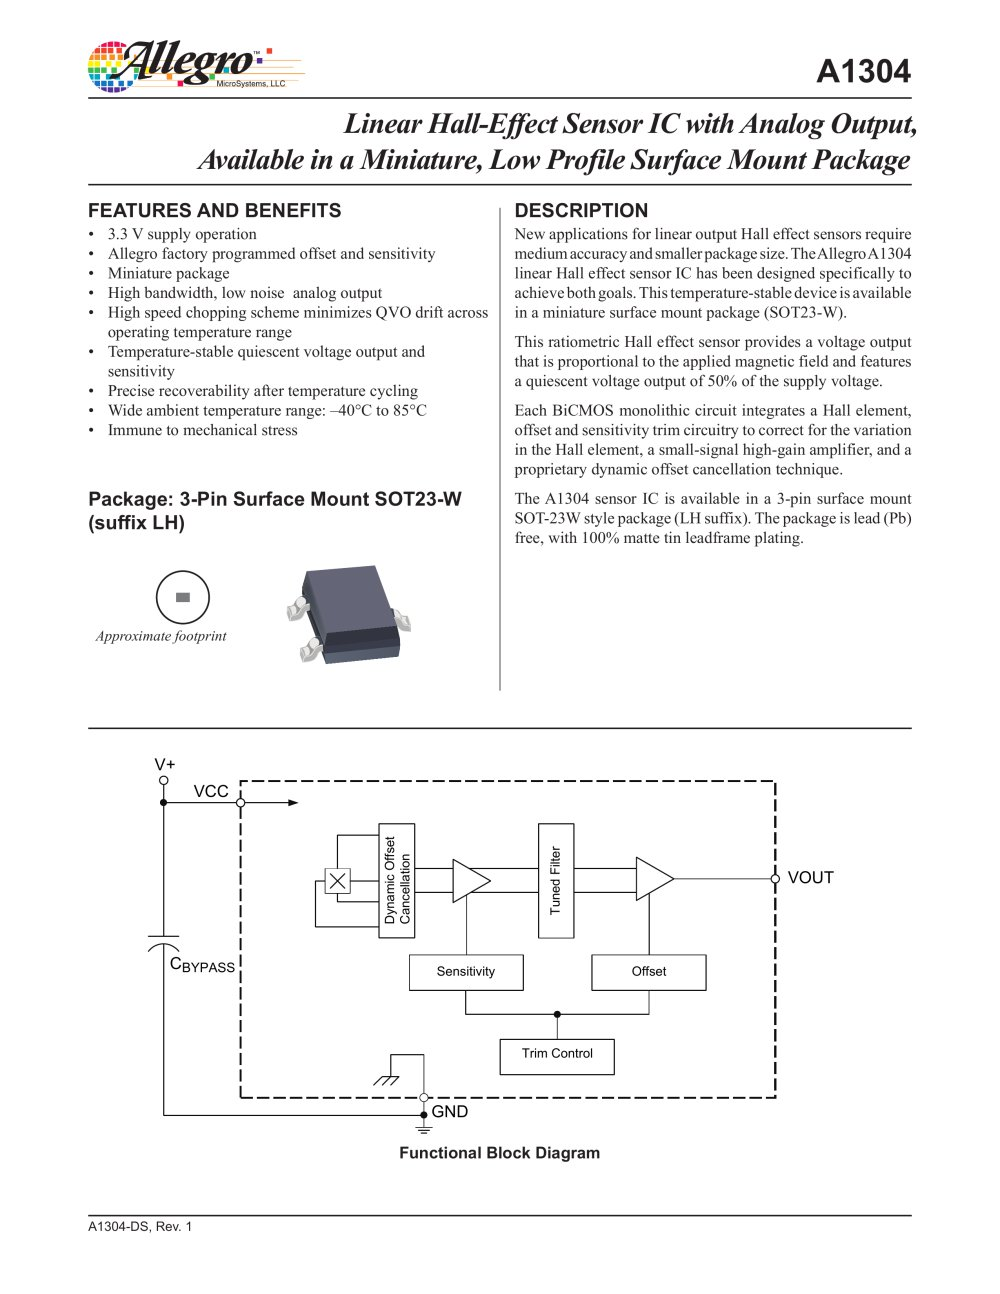 A1304 Allegro Microsystems Pdf Catalogs Technical Hall Effect Sensor Diagram 1 10 Pages